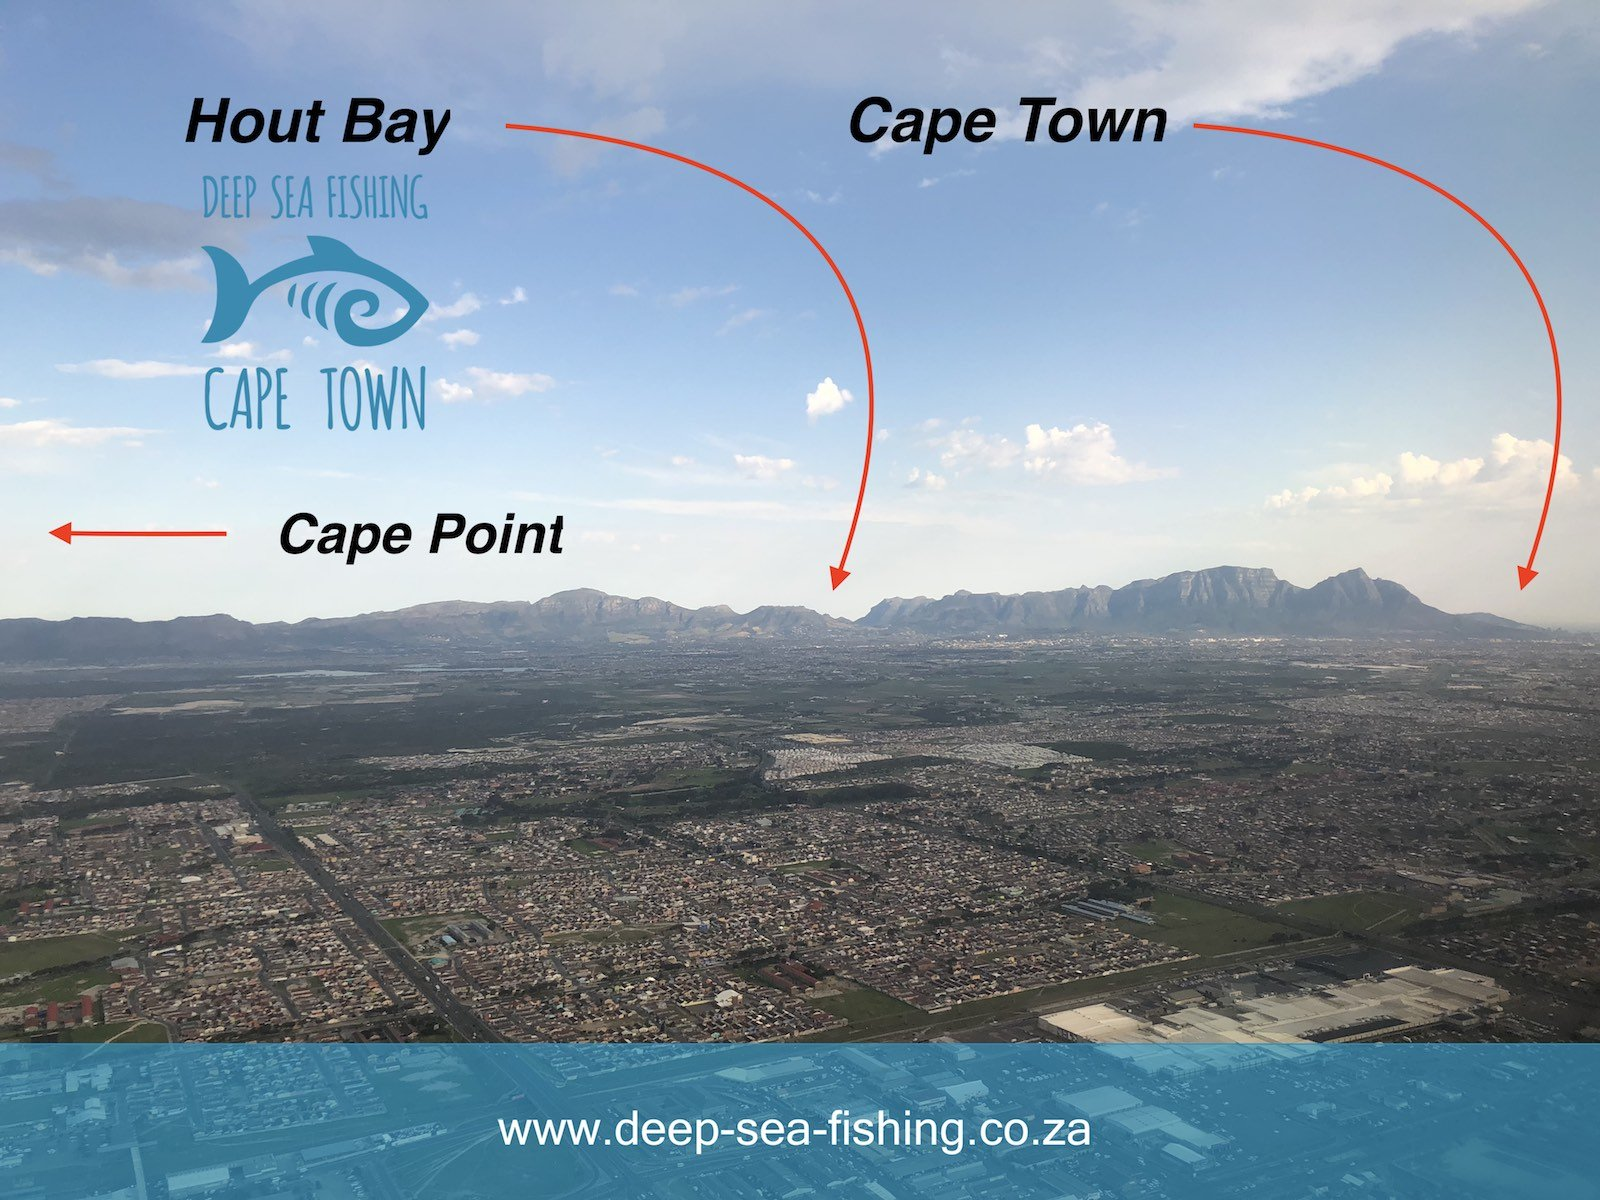 deep sea fishing cape town hout bay location small